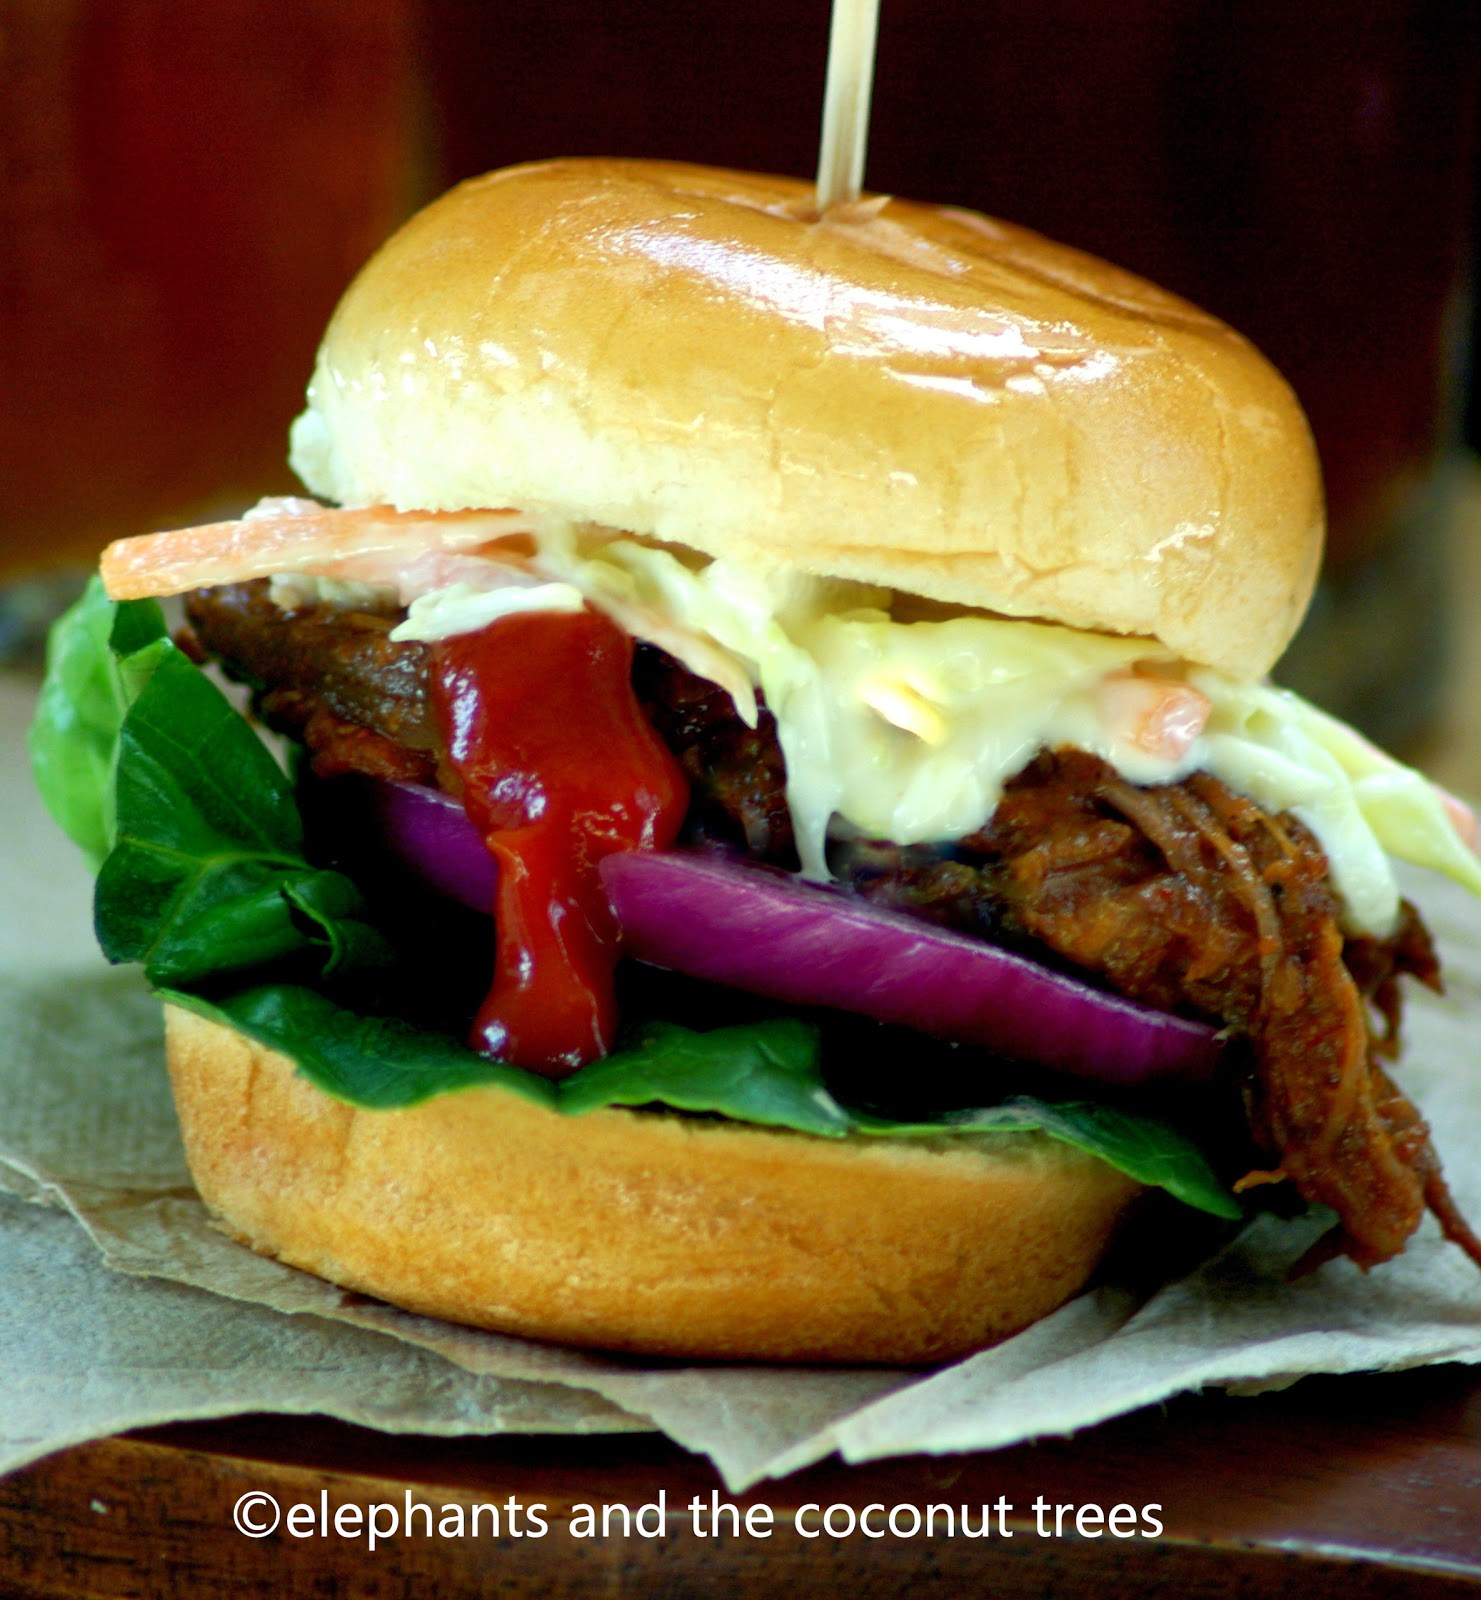 elephants and the coconut trees: Shredded Beef Sliders